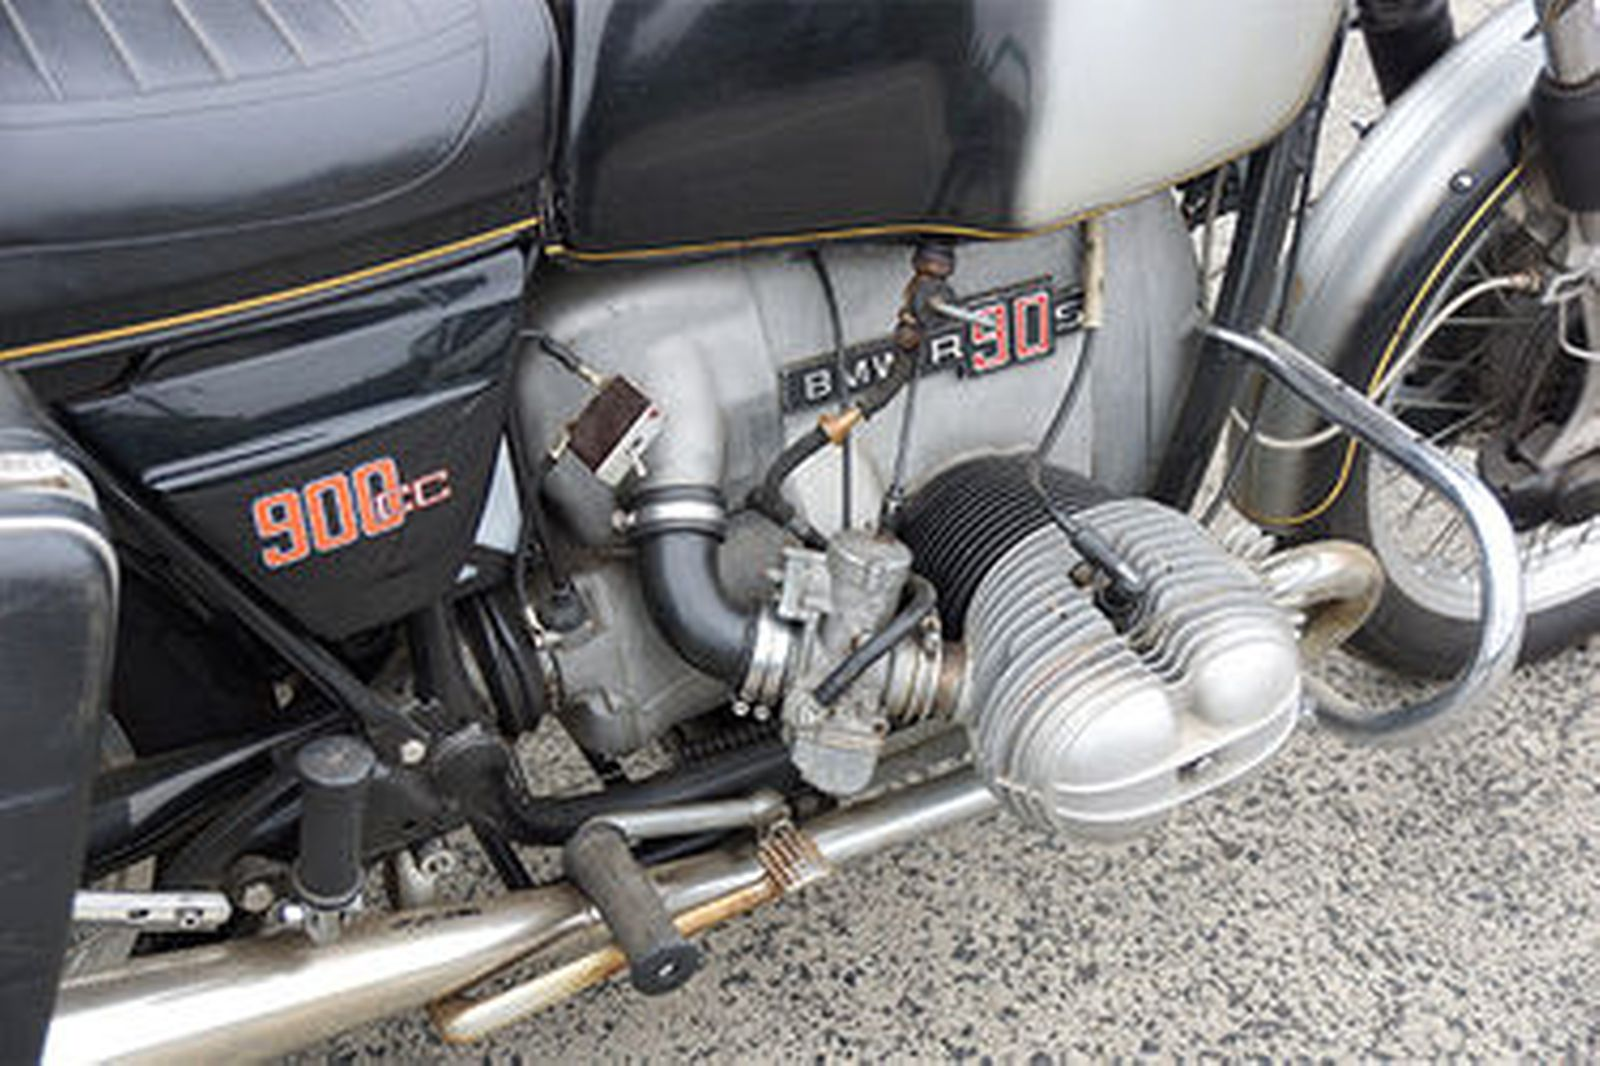 BMW R90S Motorcycle with Tillbrook Sidecar